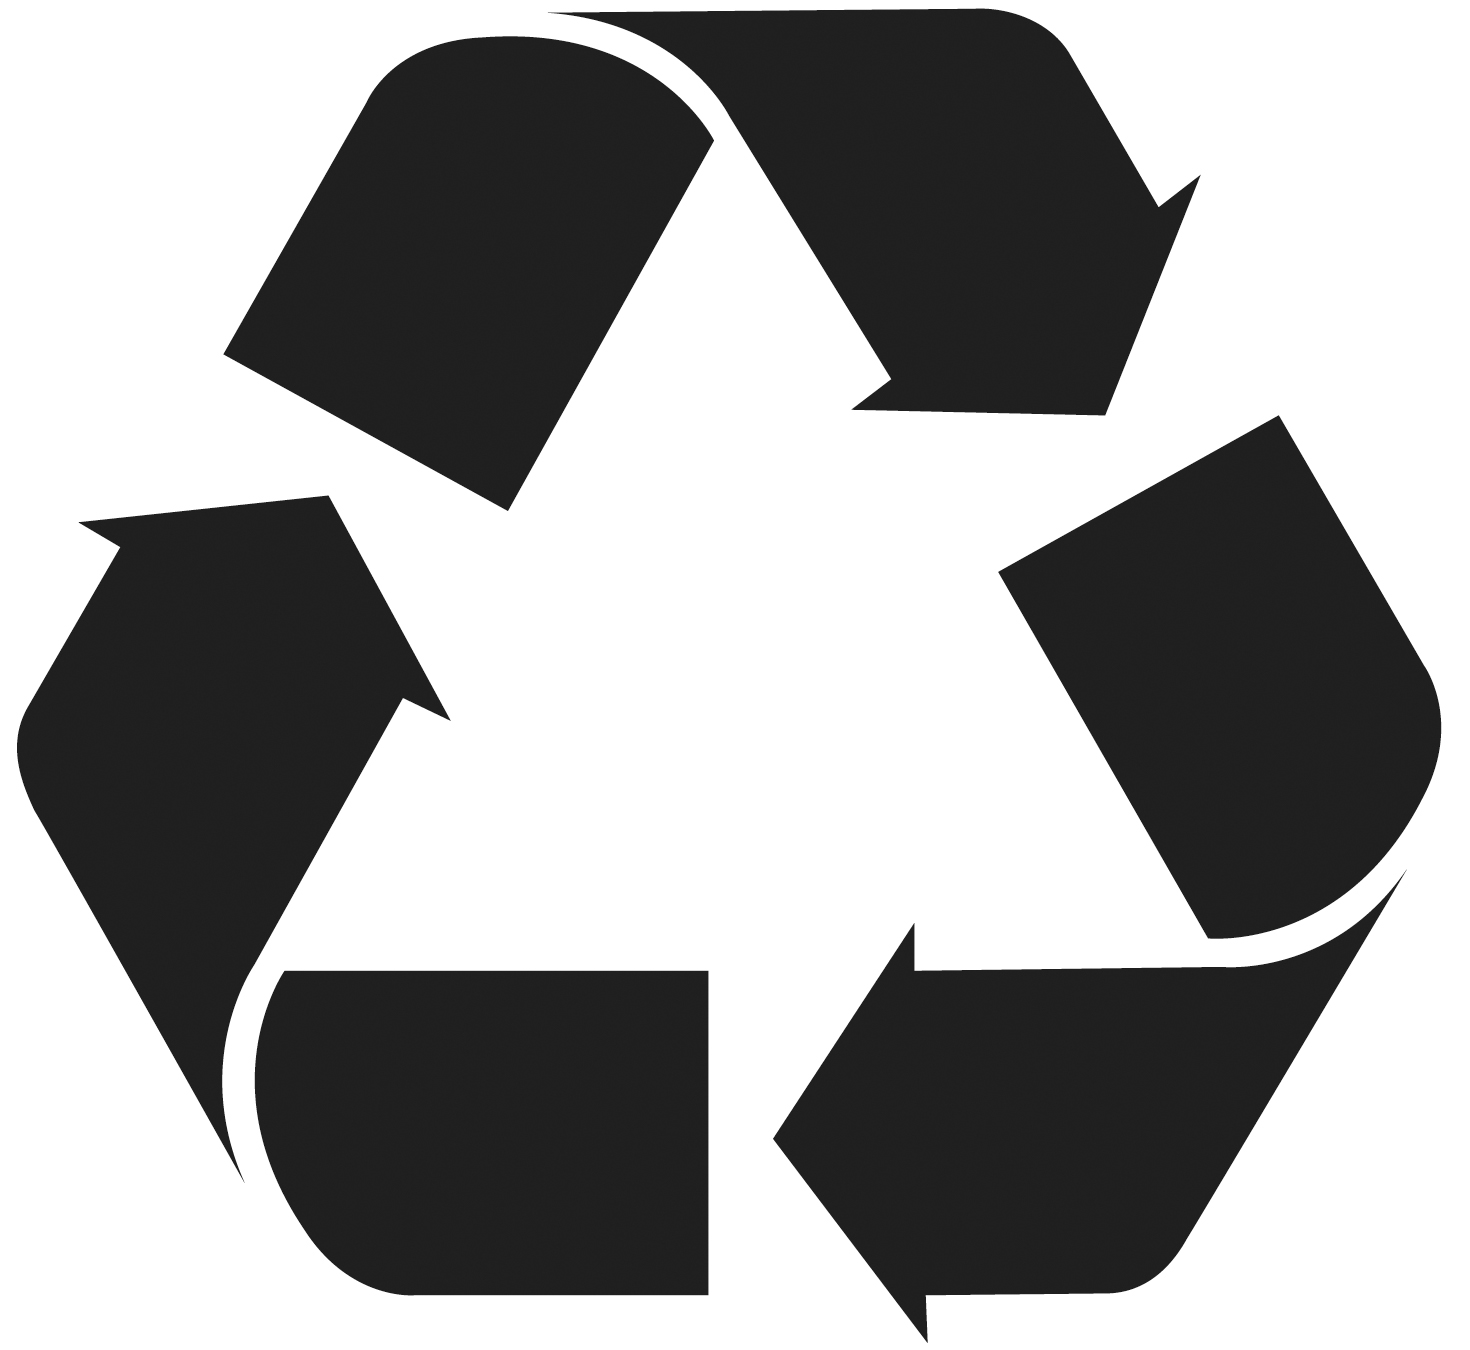 Free Recycle Logo Image, Download Free Clip Art, Free Clip.